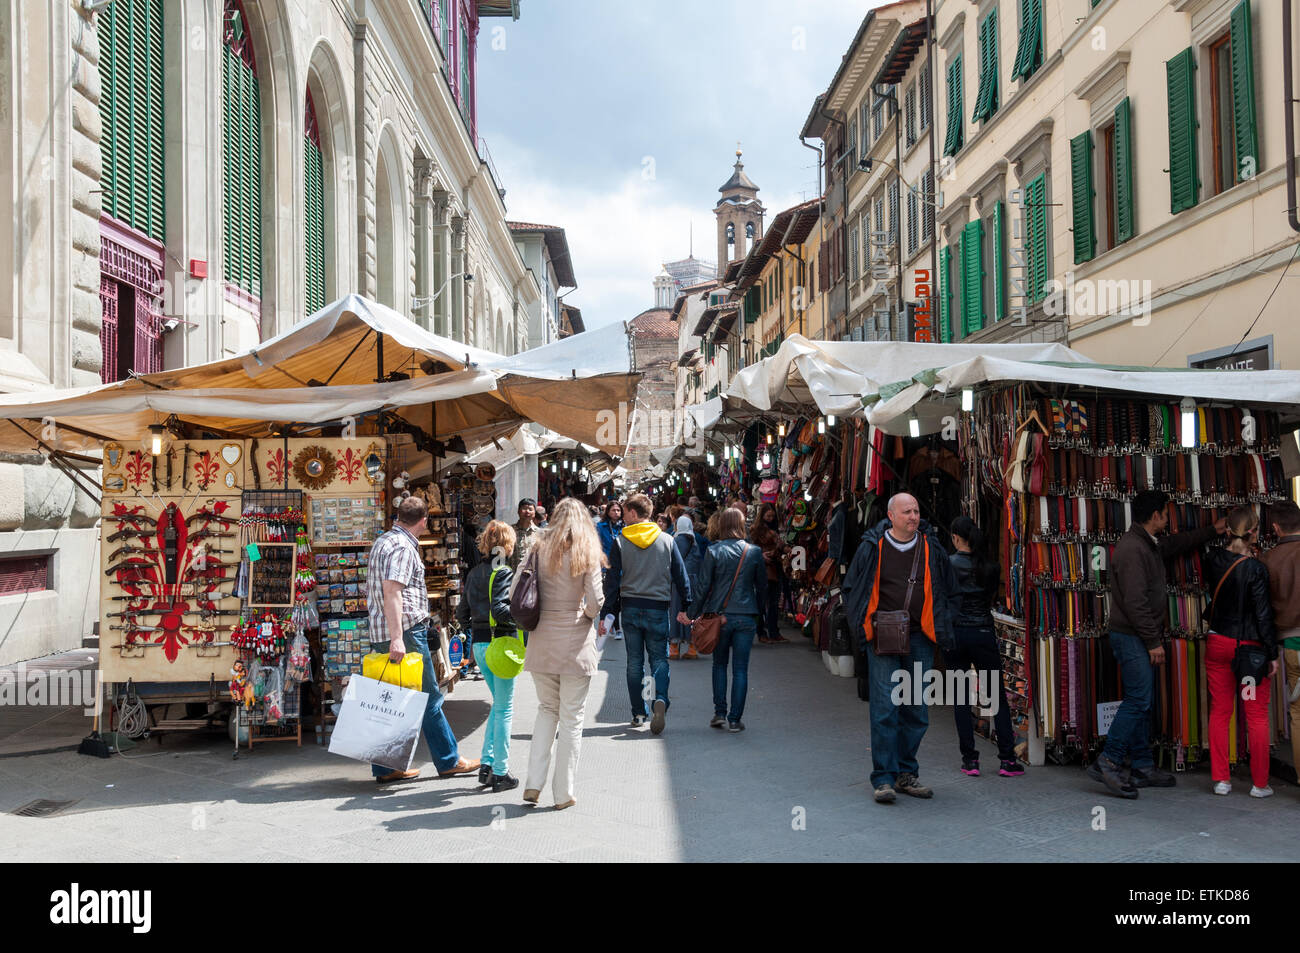 Merchants at the Mercato Centrale market in Florence, Italy - Stock Image